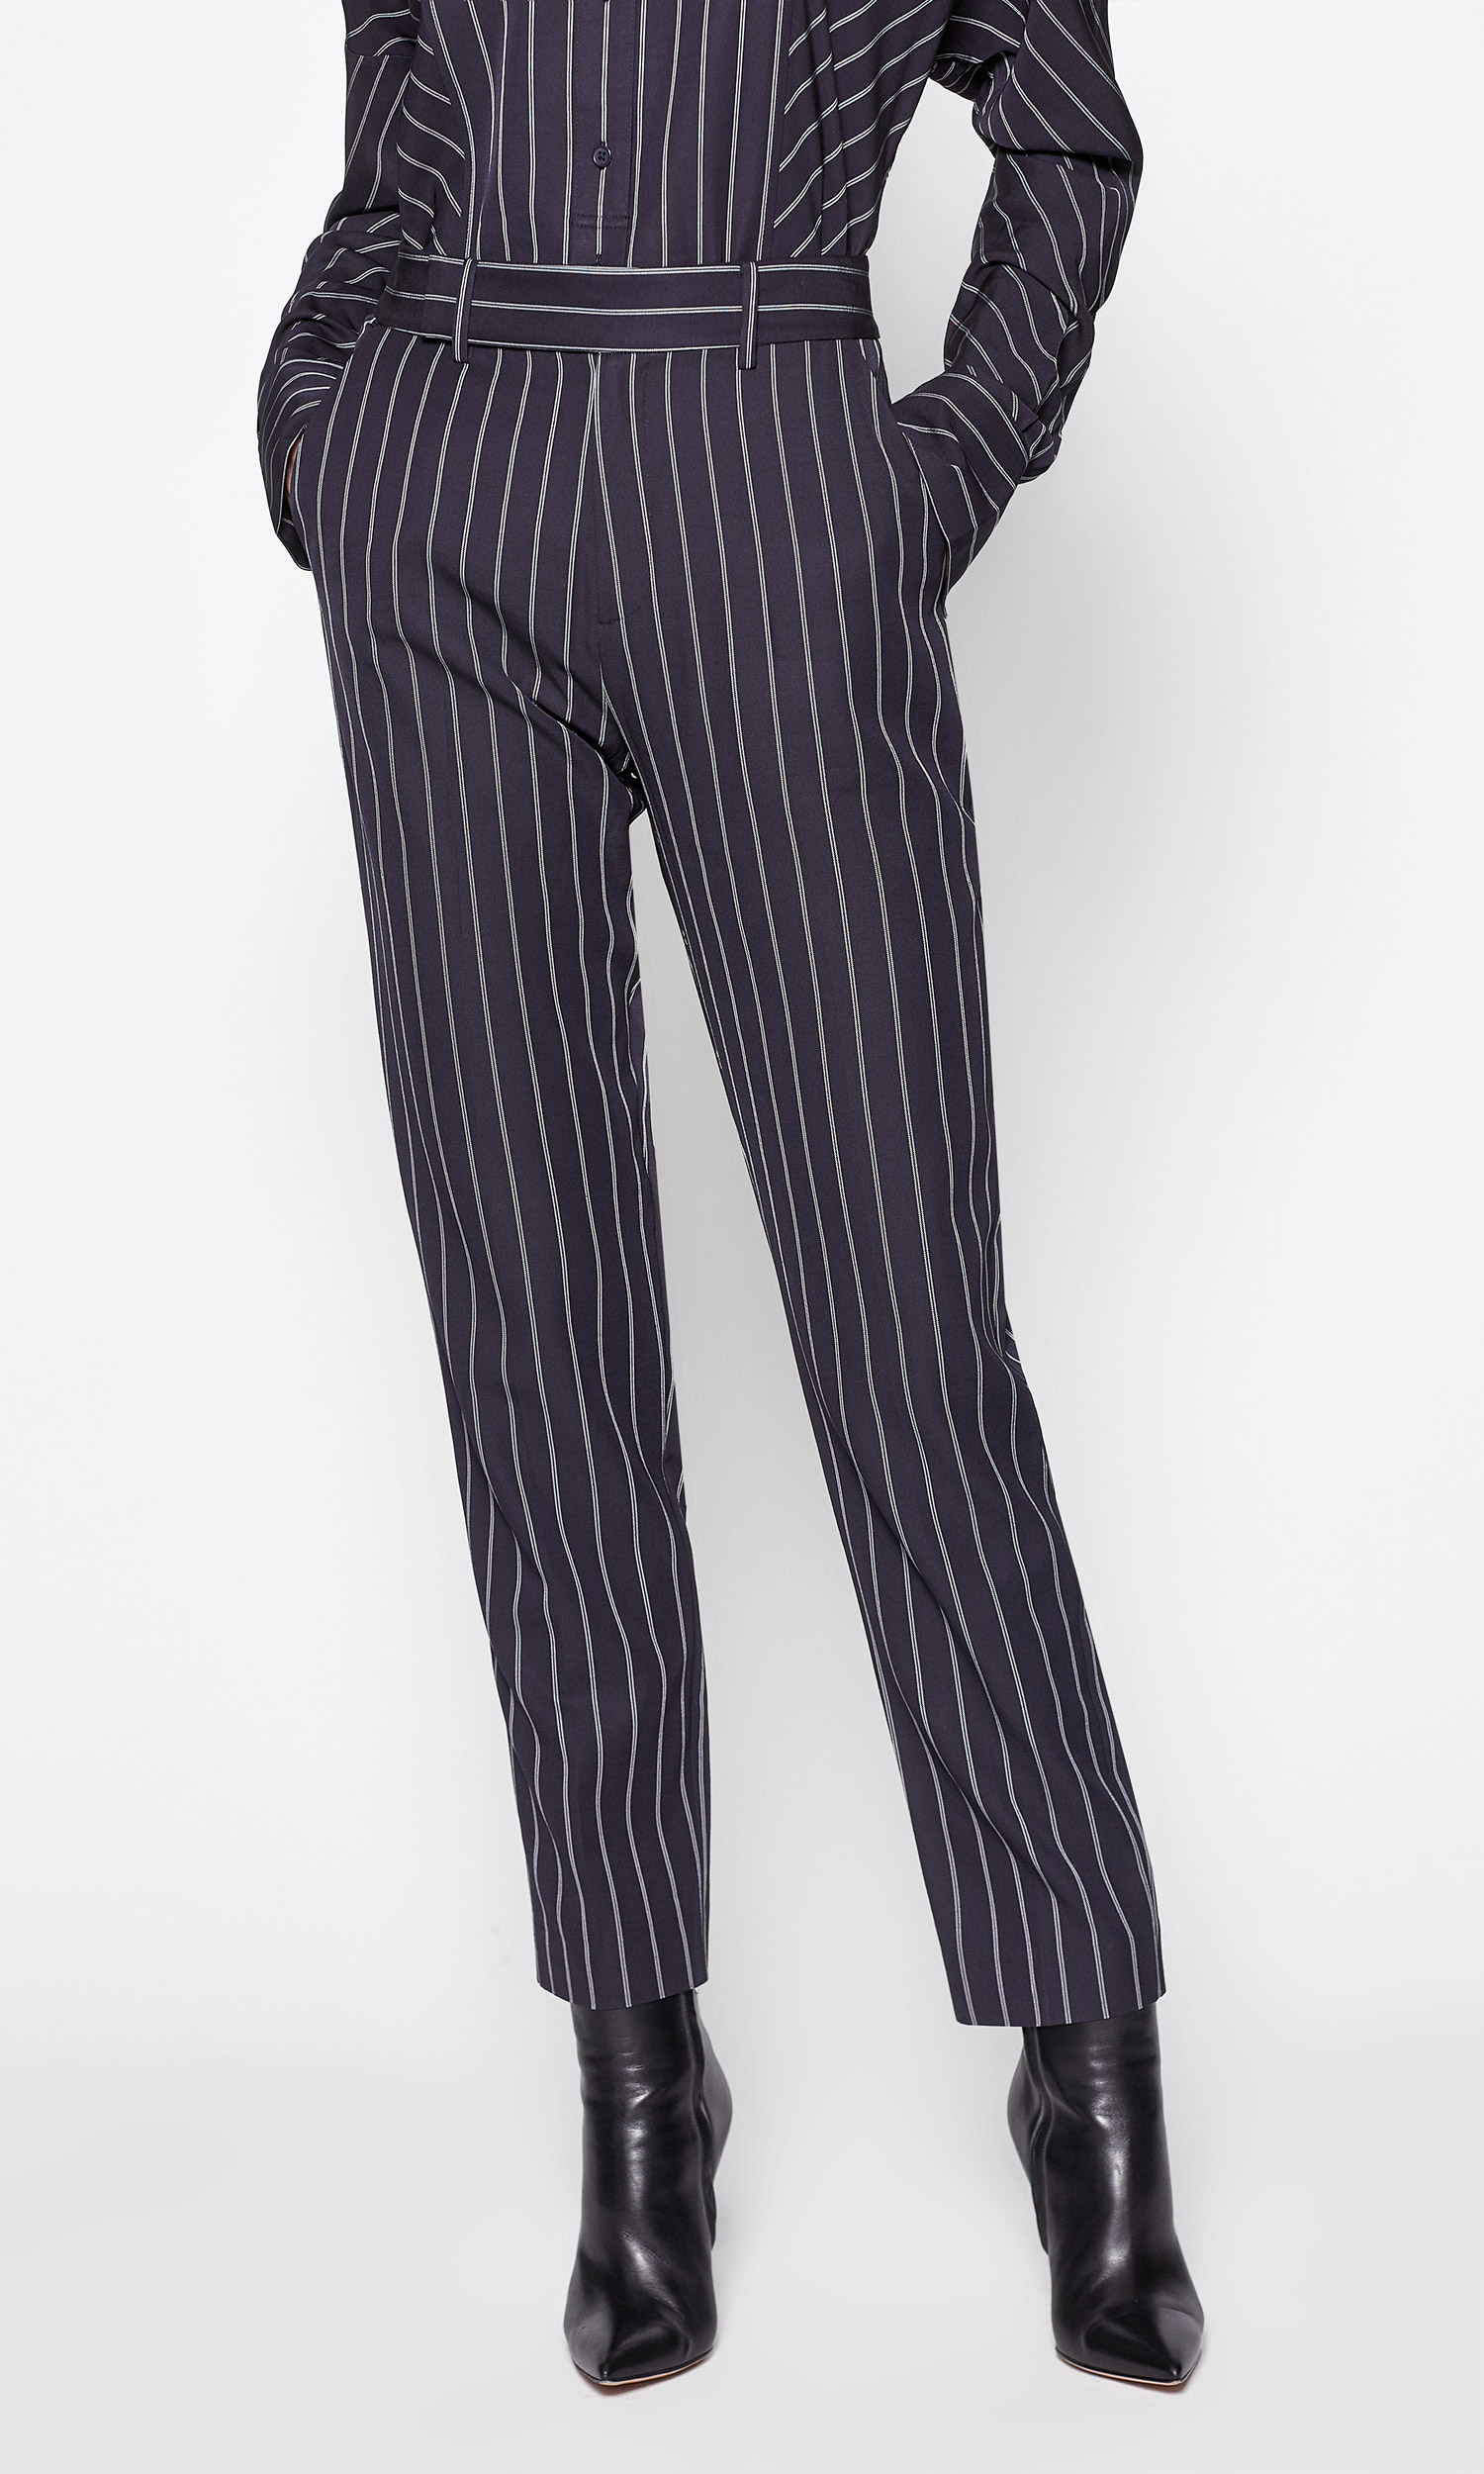 Warsaw Trouser by Equipment